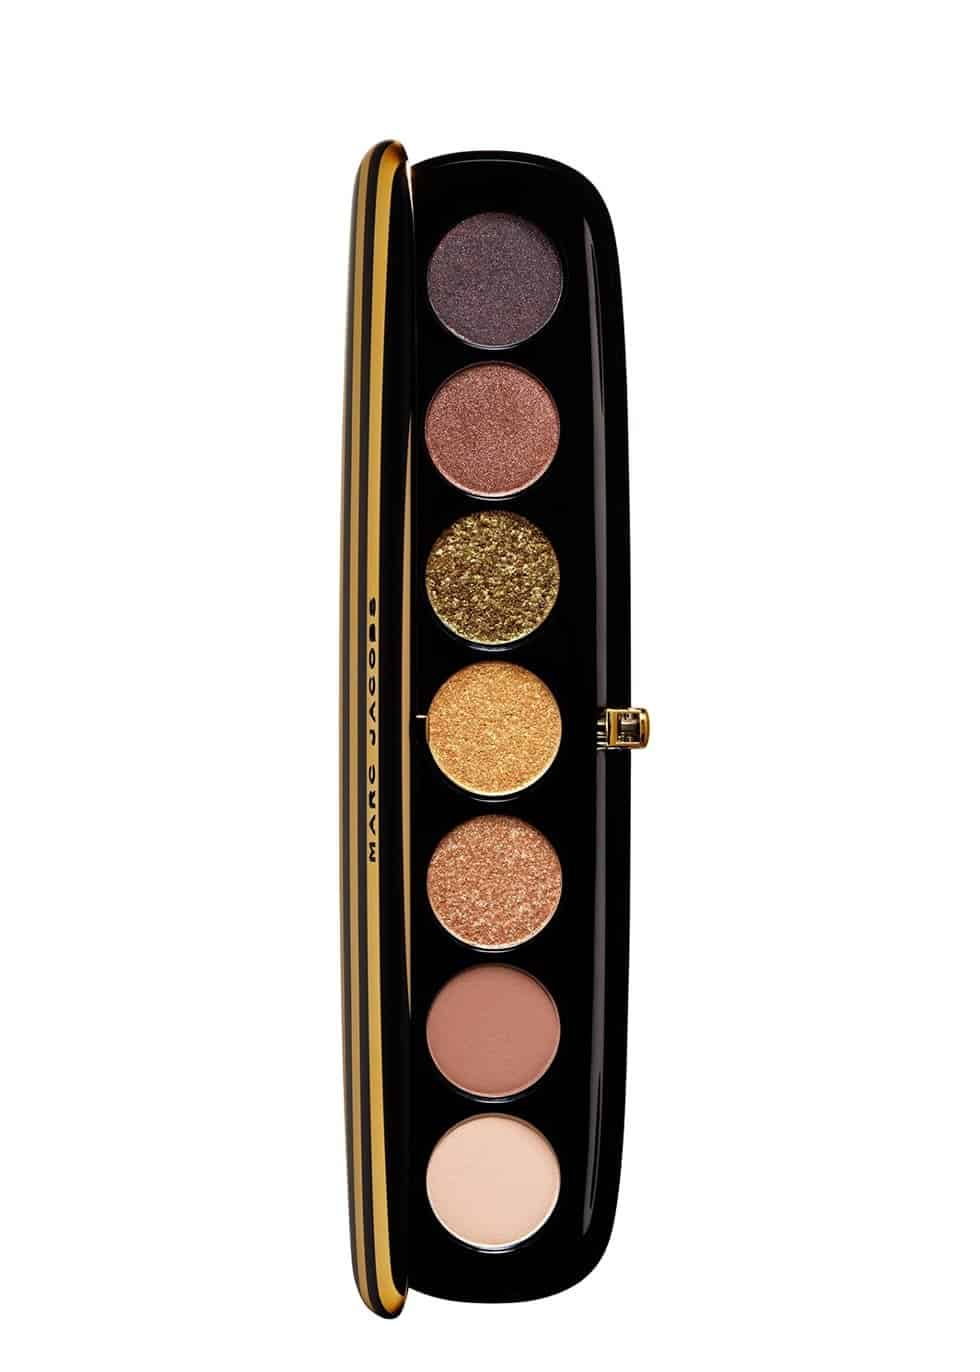 Marc Jacobs Extravagance Eye-Conic Palette (2)